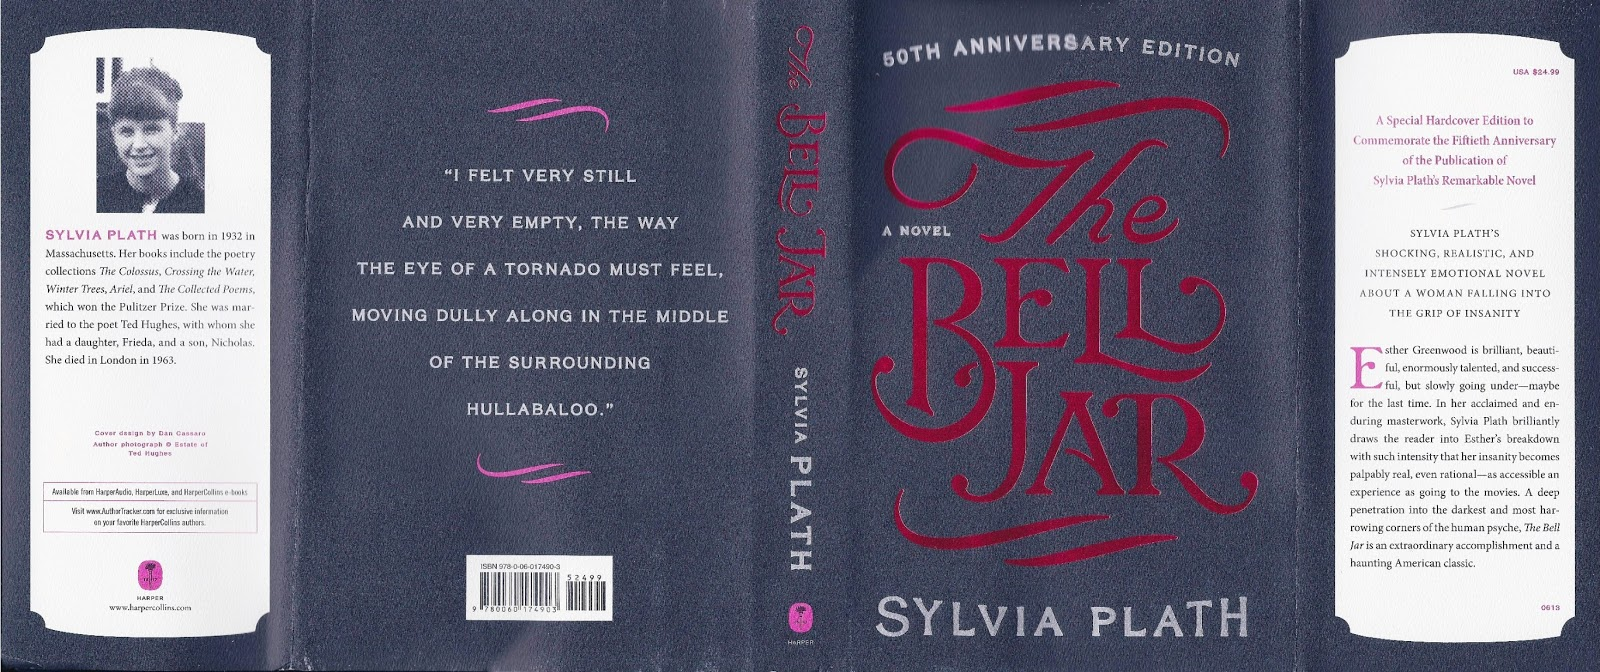 Looking For Someone To Do My Assignment Harper Publishes Th Anniversary Edition Of Sylvia Plaths The Bell Jar Papers For Sale also Psychology As A Science Essay Sylvia Plath Info Harper Publishes Th Anniversary Edition Of  English Essays